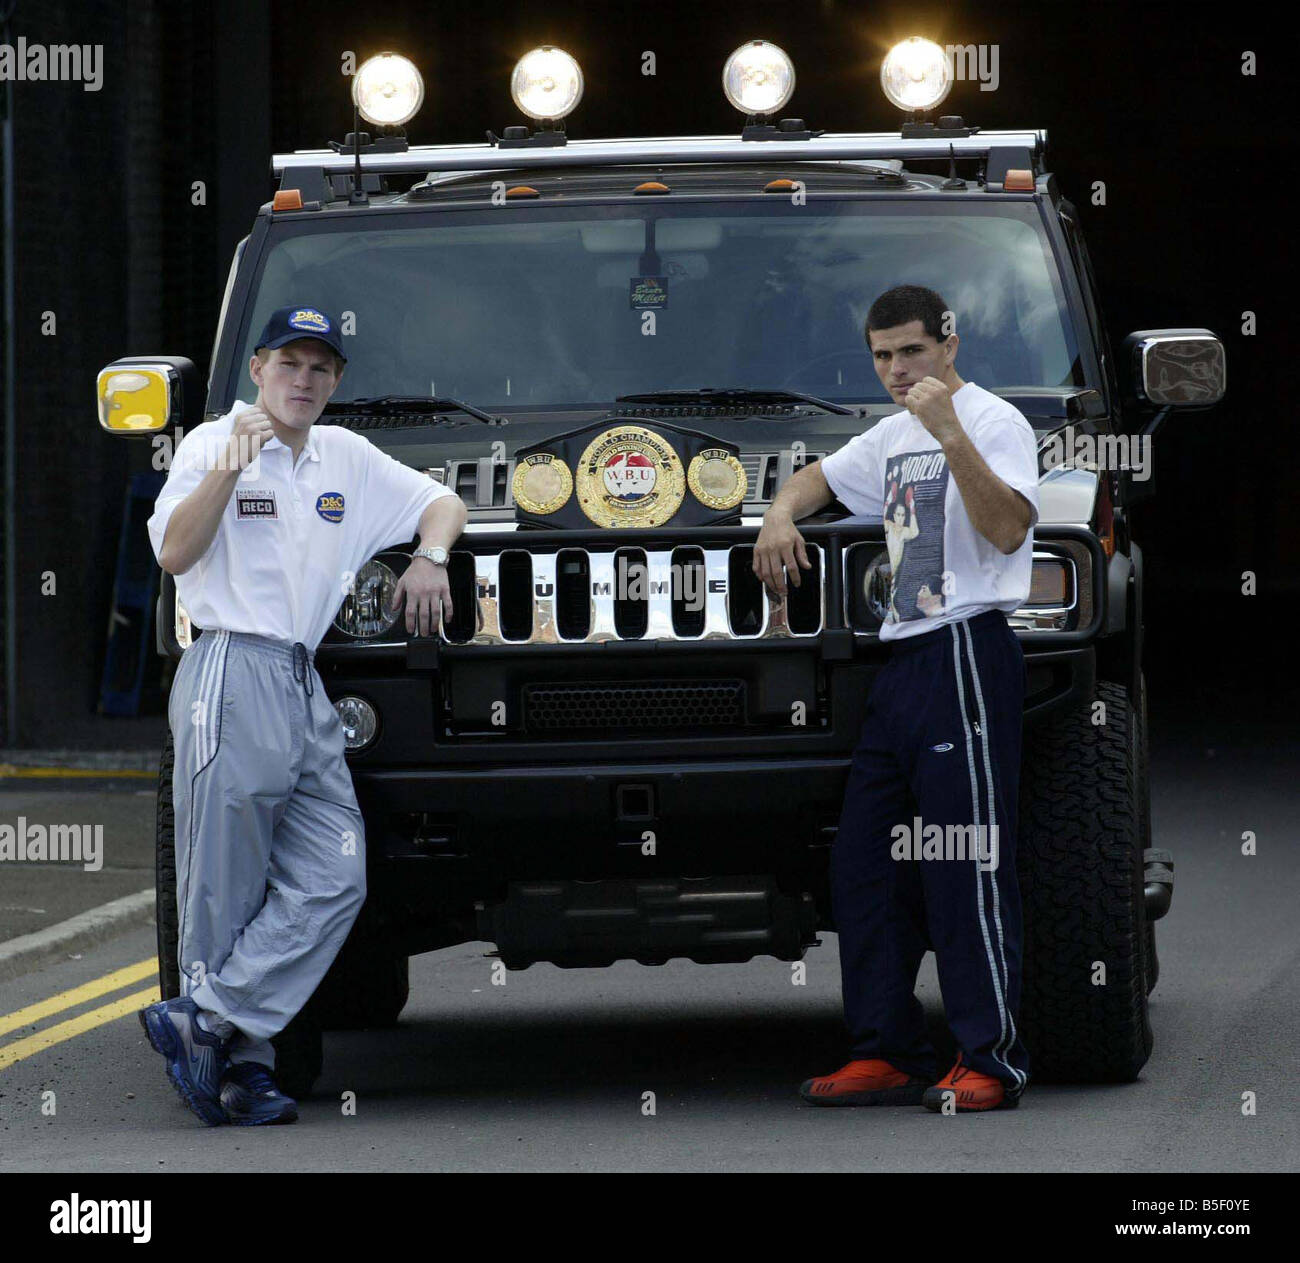 photo of Ricky Hatton Humvee - car